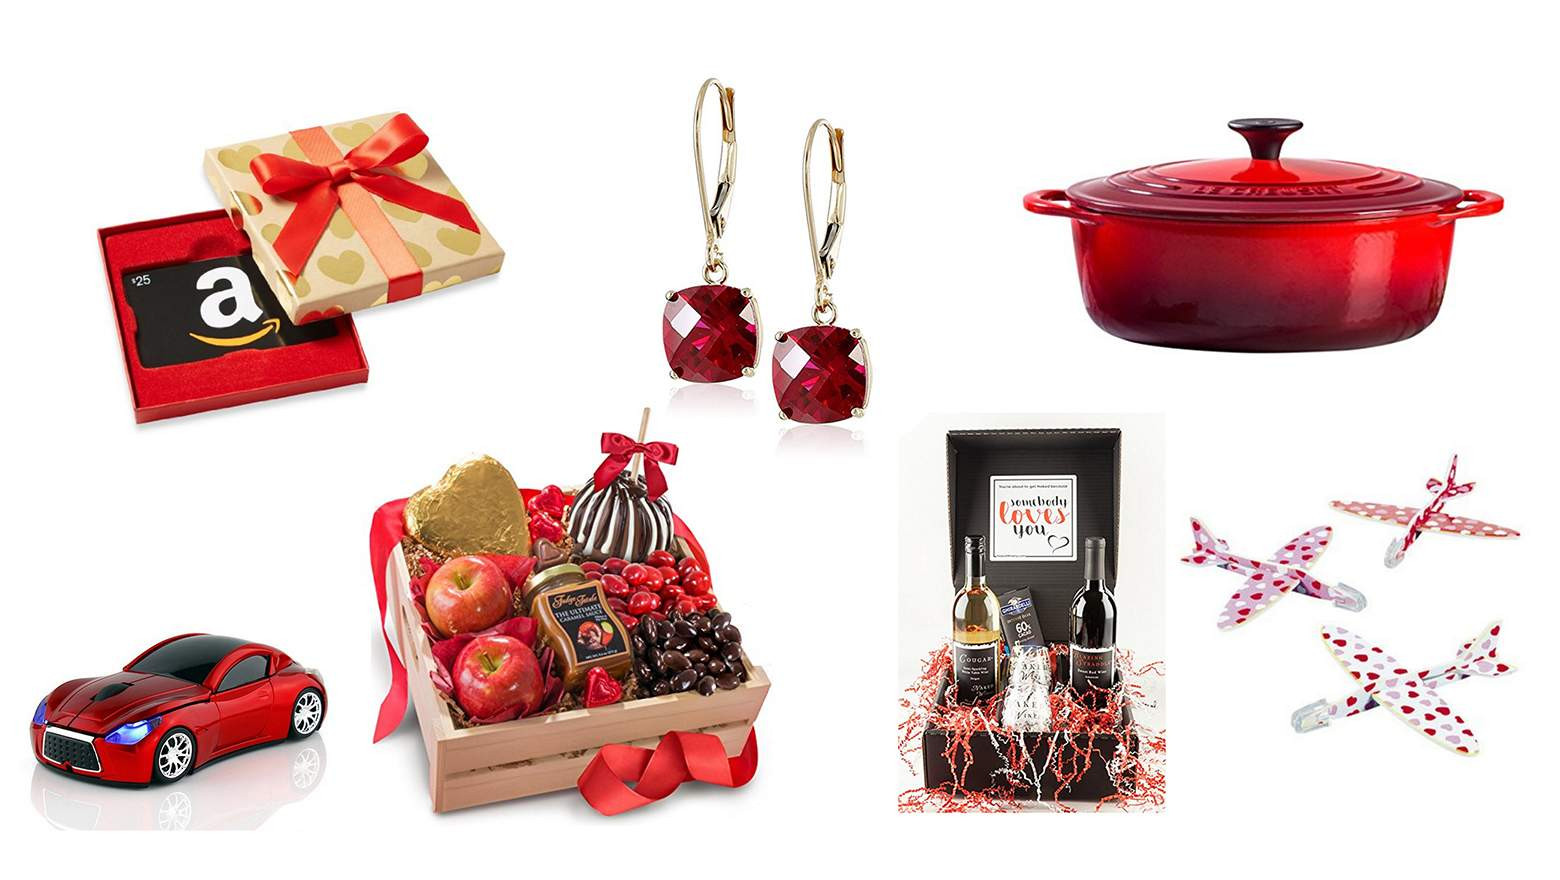 Valentines Day Gift Ideas  Top 10 Best Last Minute Valentine's Day Gift Ideas